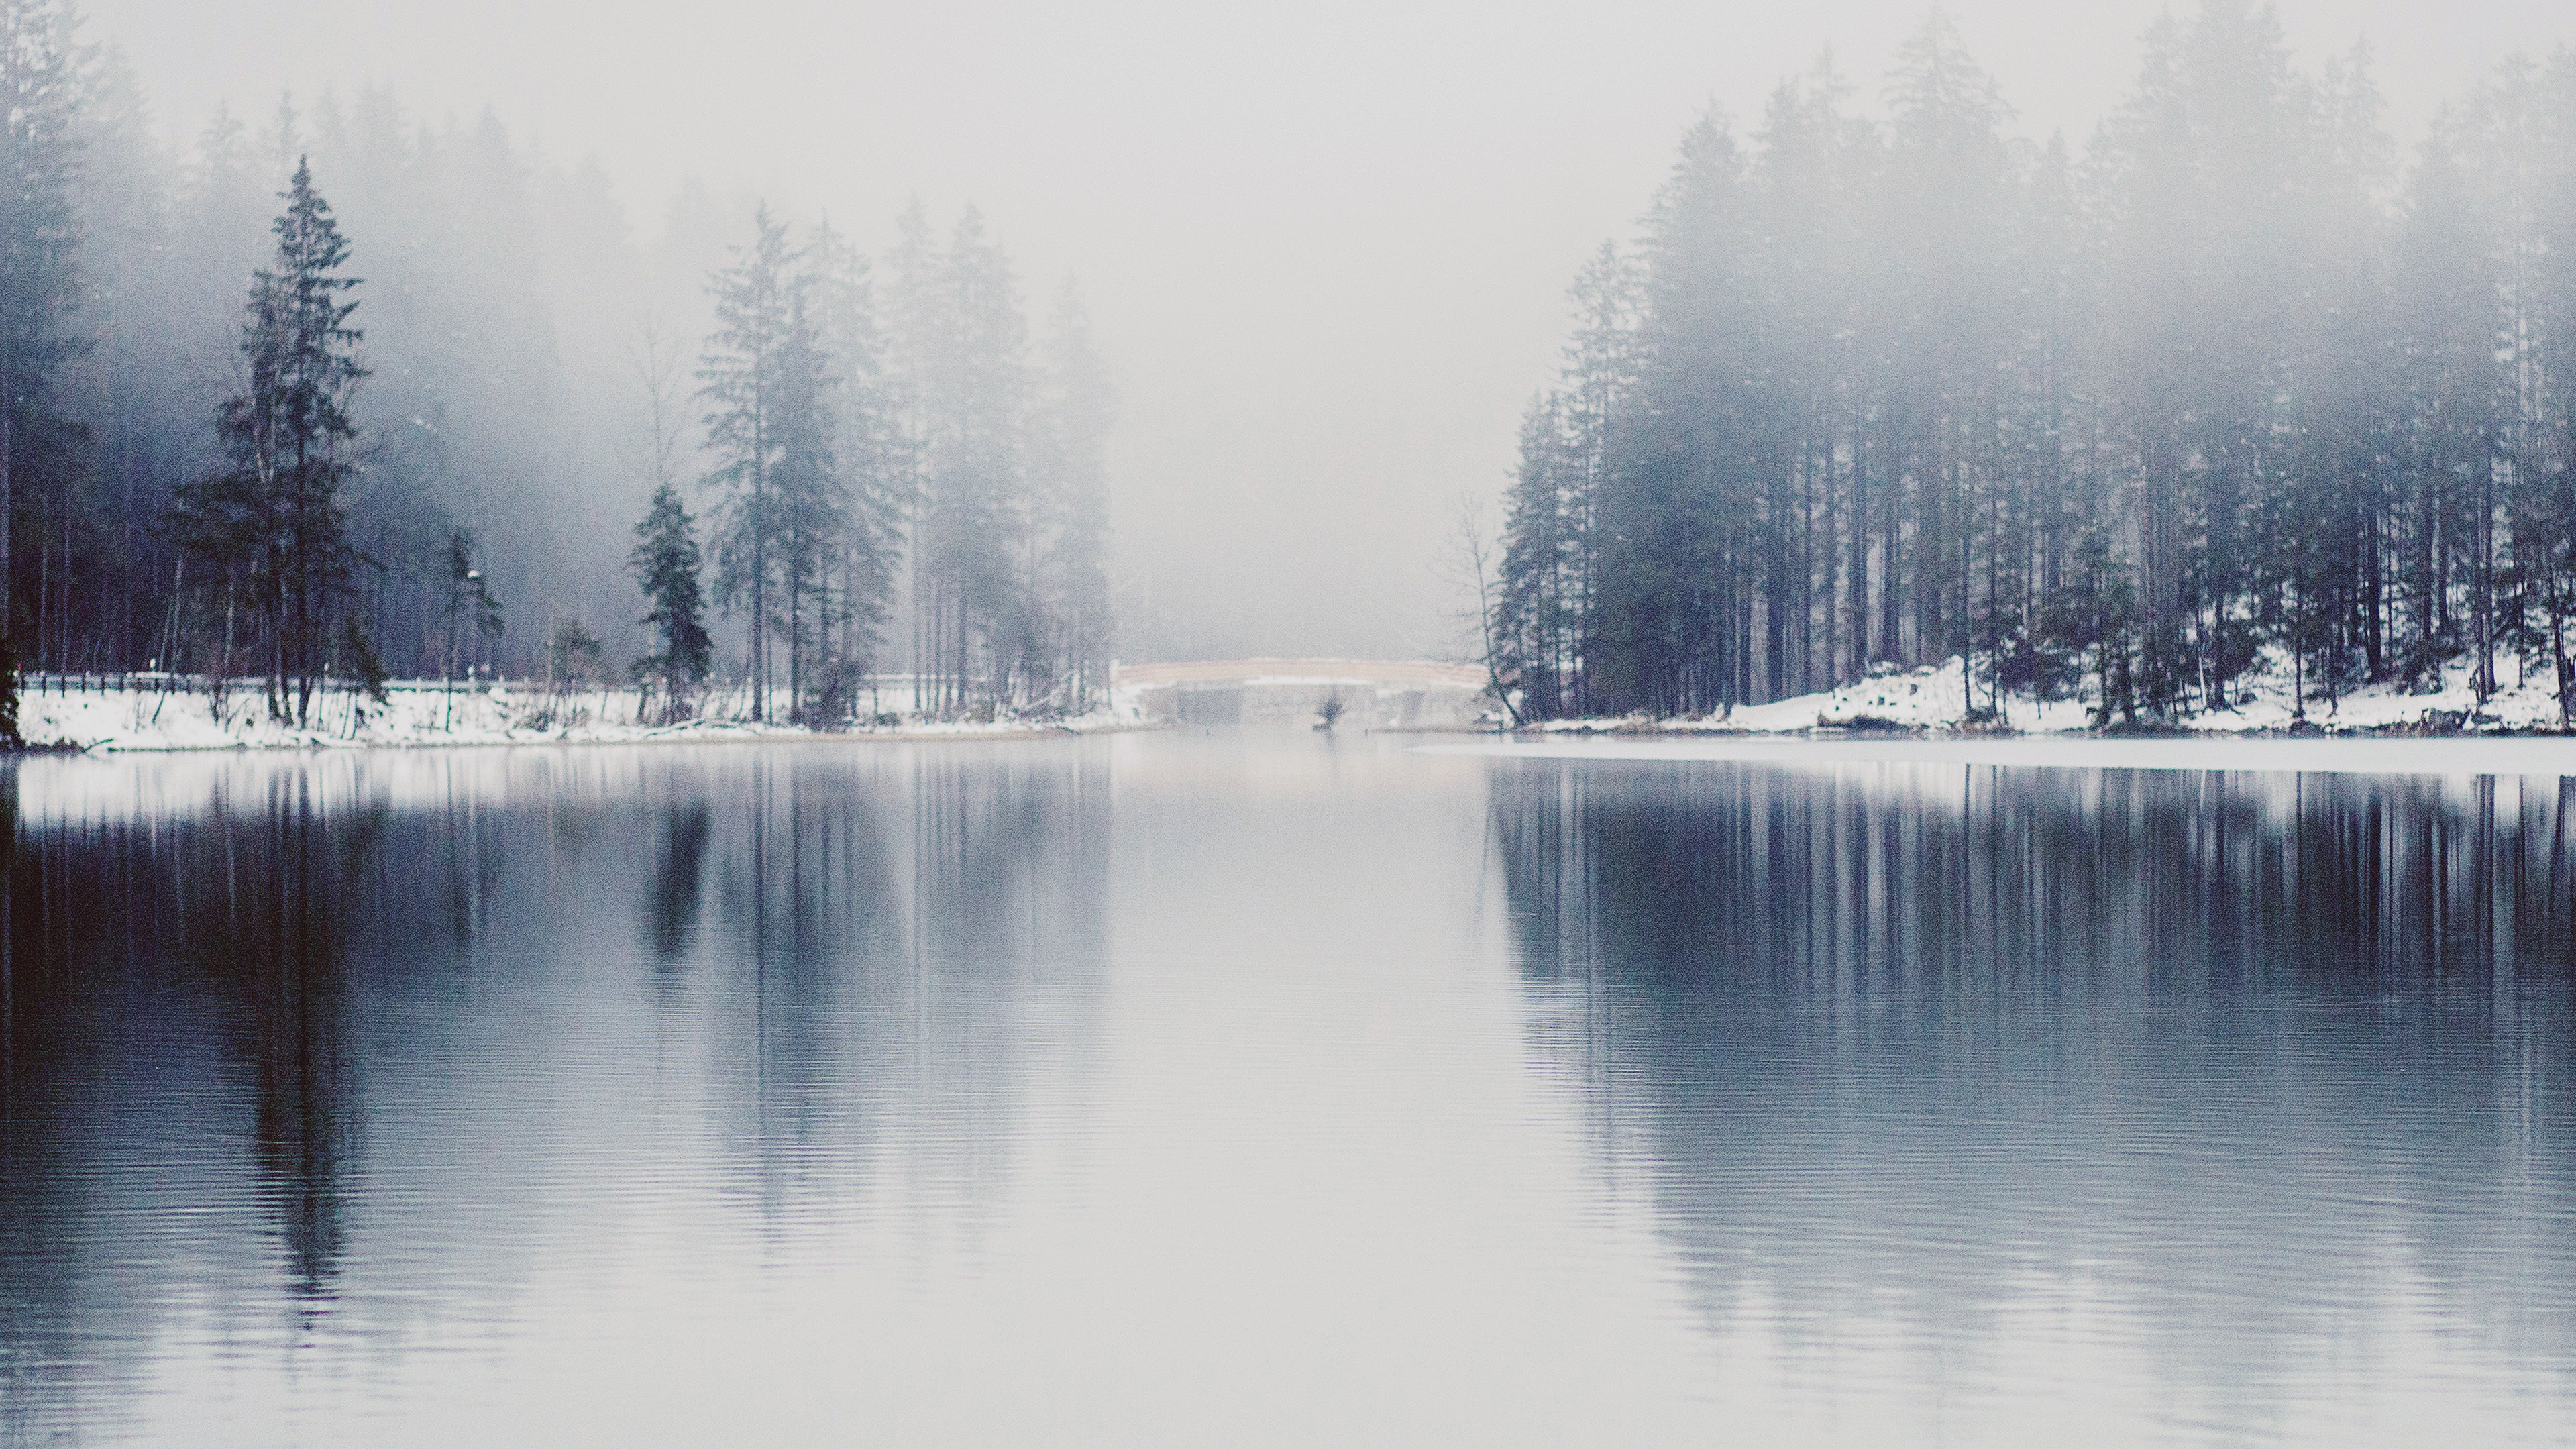 Fall Mountain Lake Wallpaper Nk06 Winter Lake White Blue Wood Nature Fog Wallpaper